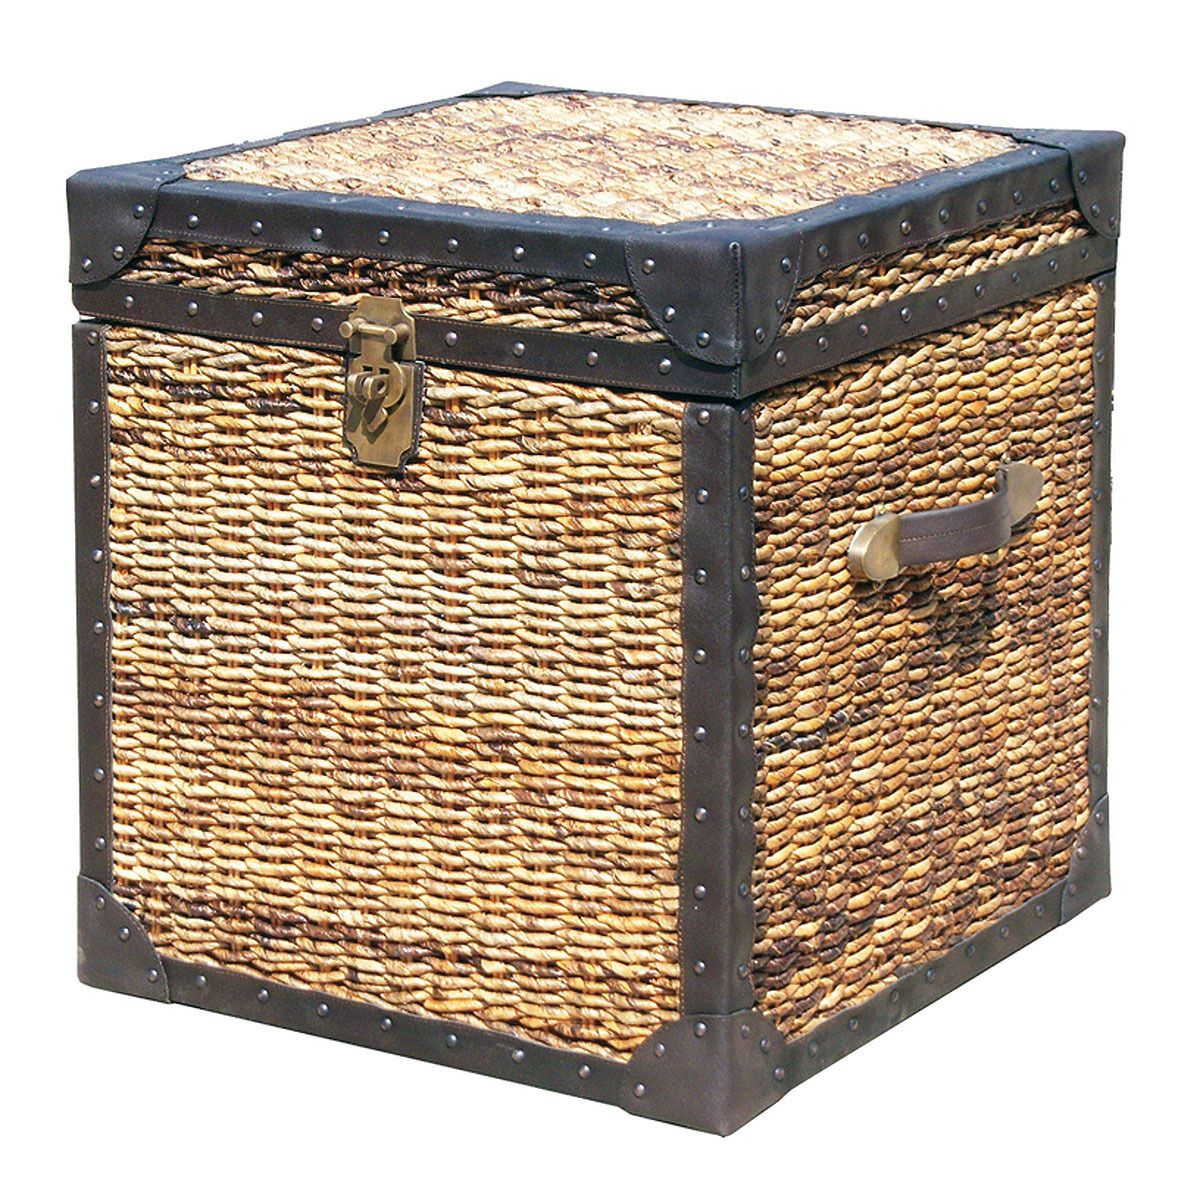 Seagrass Woven Trunk Side Table Trunk Side Table Woven Trunk Coffee Table Trunk